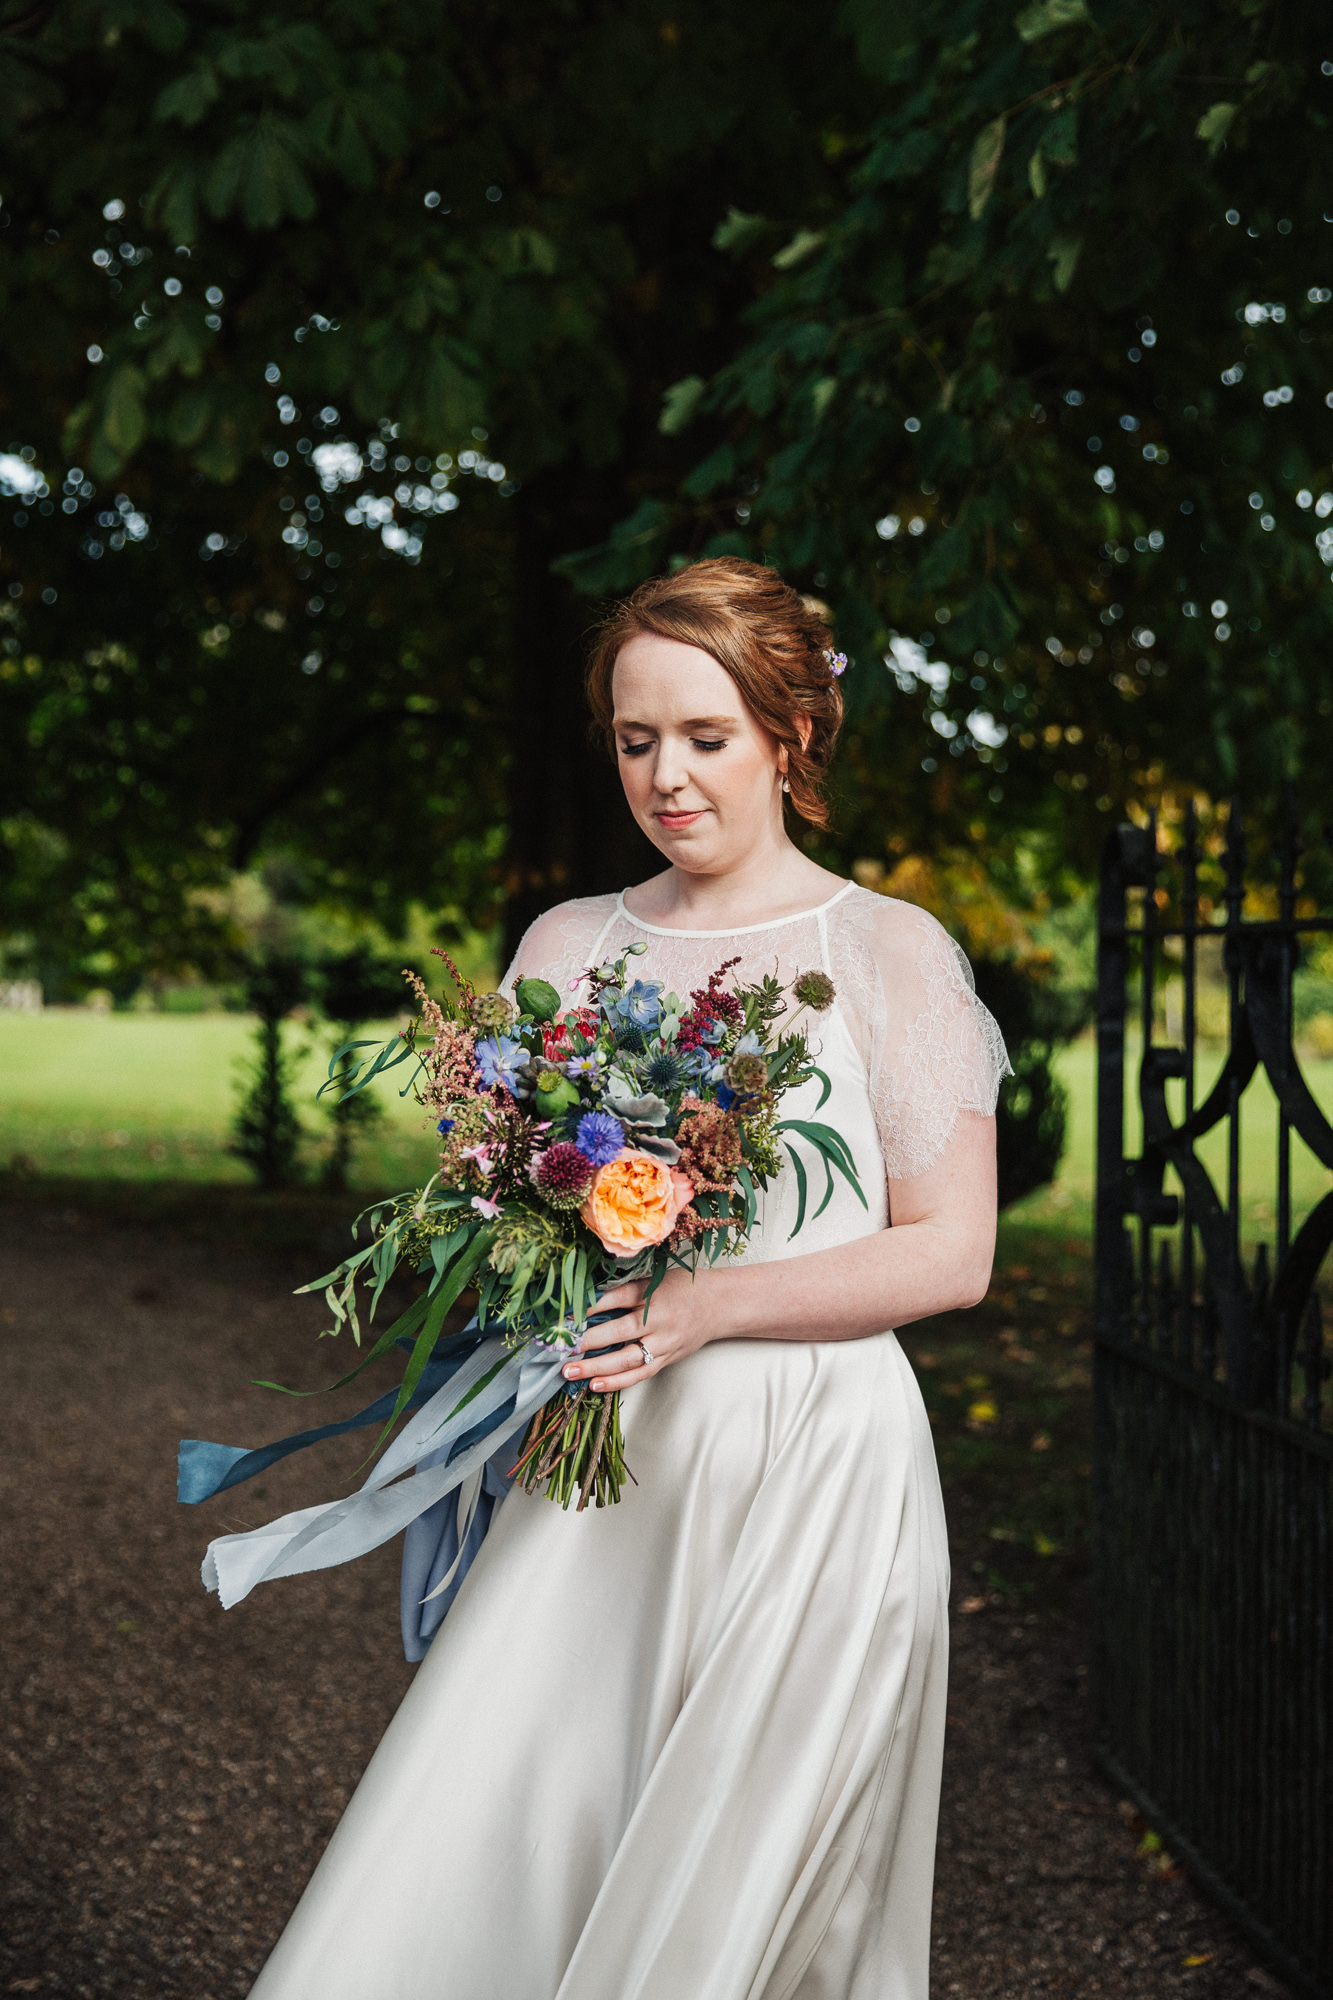 Kathryn-Kate-Beaumont-Clematis-Ivory-Silk-Lace-Wedding-Gown-Elegant-Country-House-Wedding-Emilie-May-Photography-31.jpg